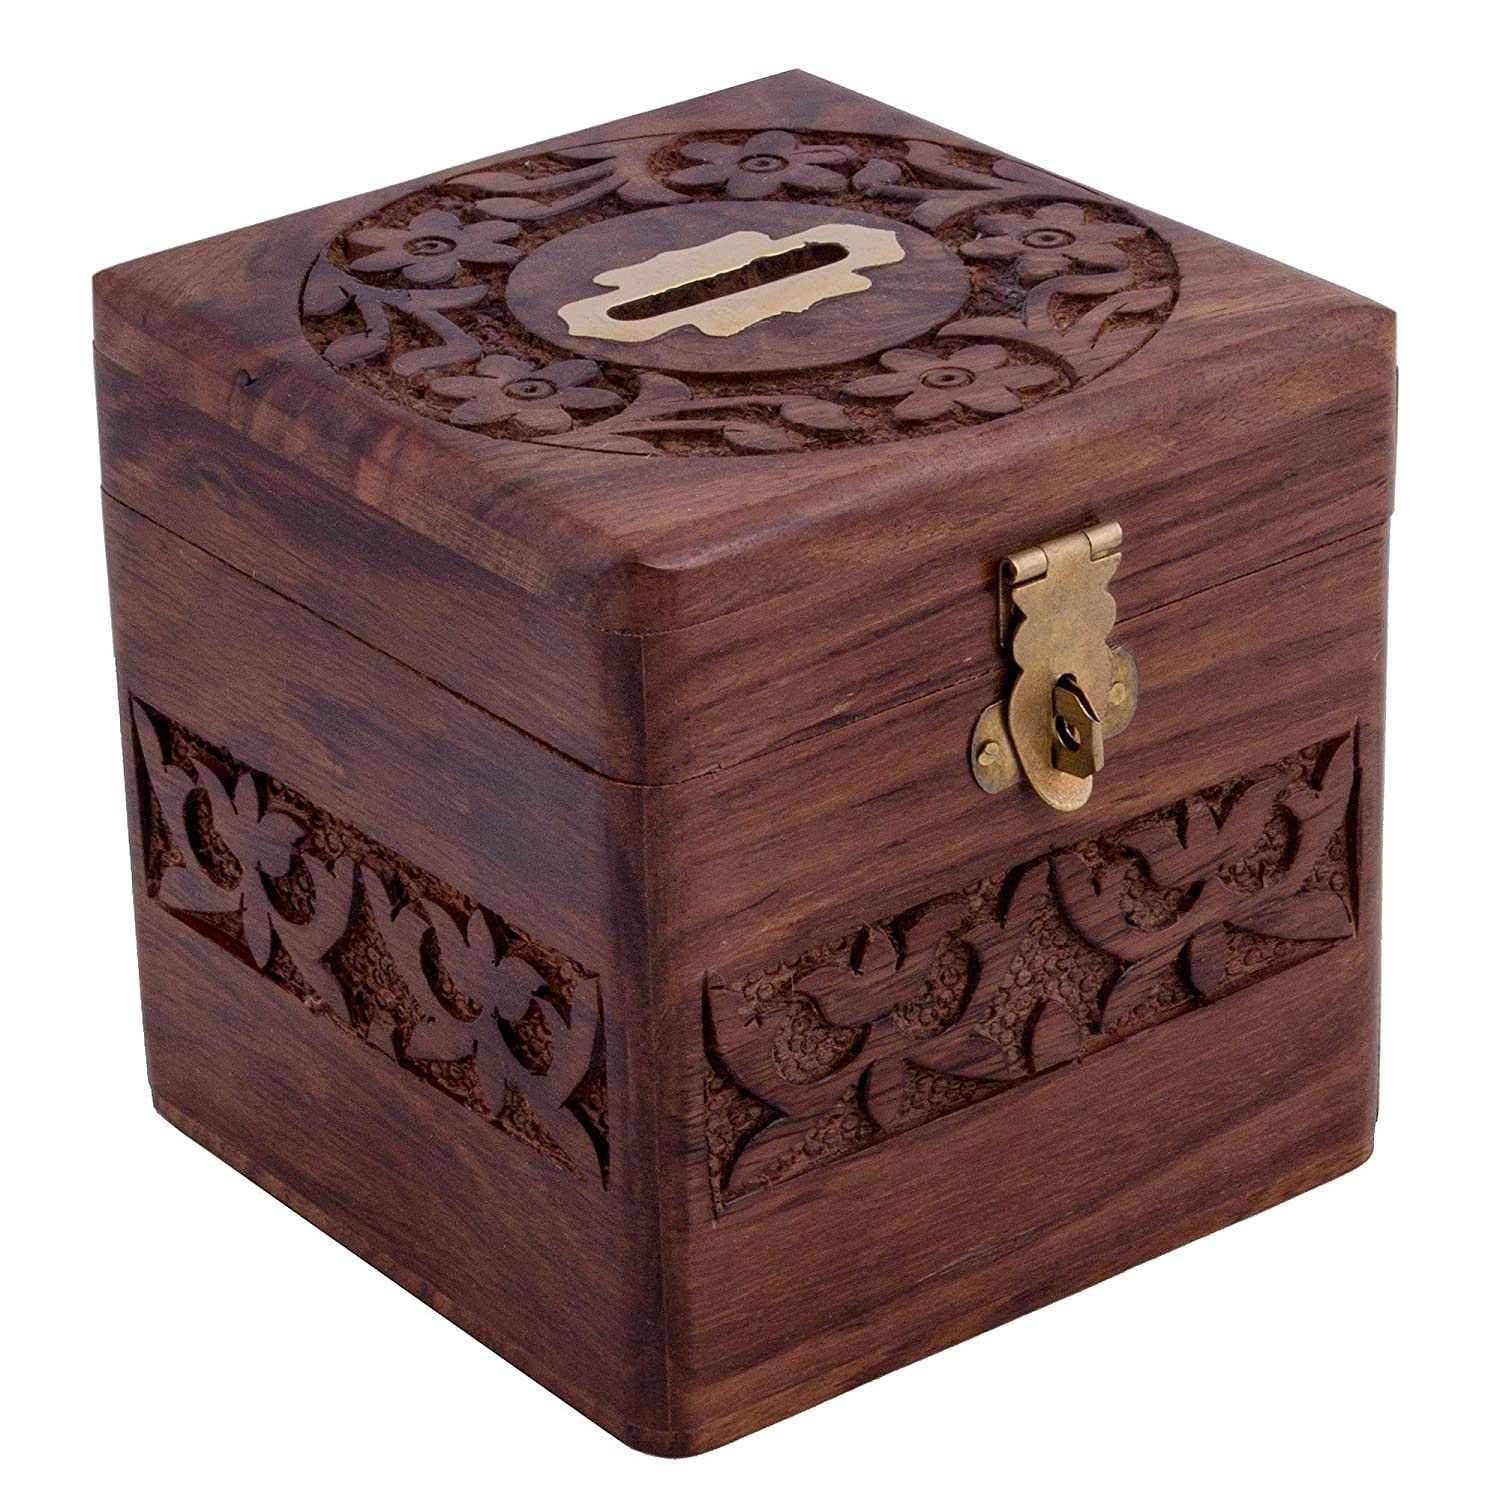 Buy online with best offers deals and discount coupons for Handmade coin bank